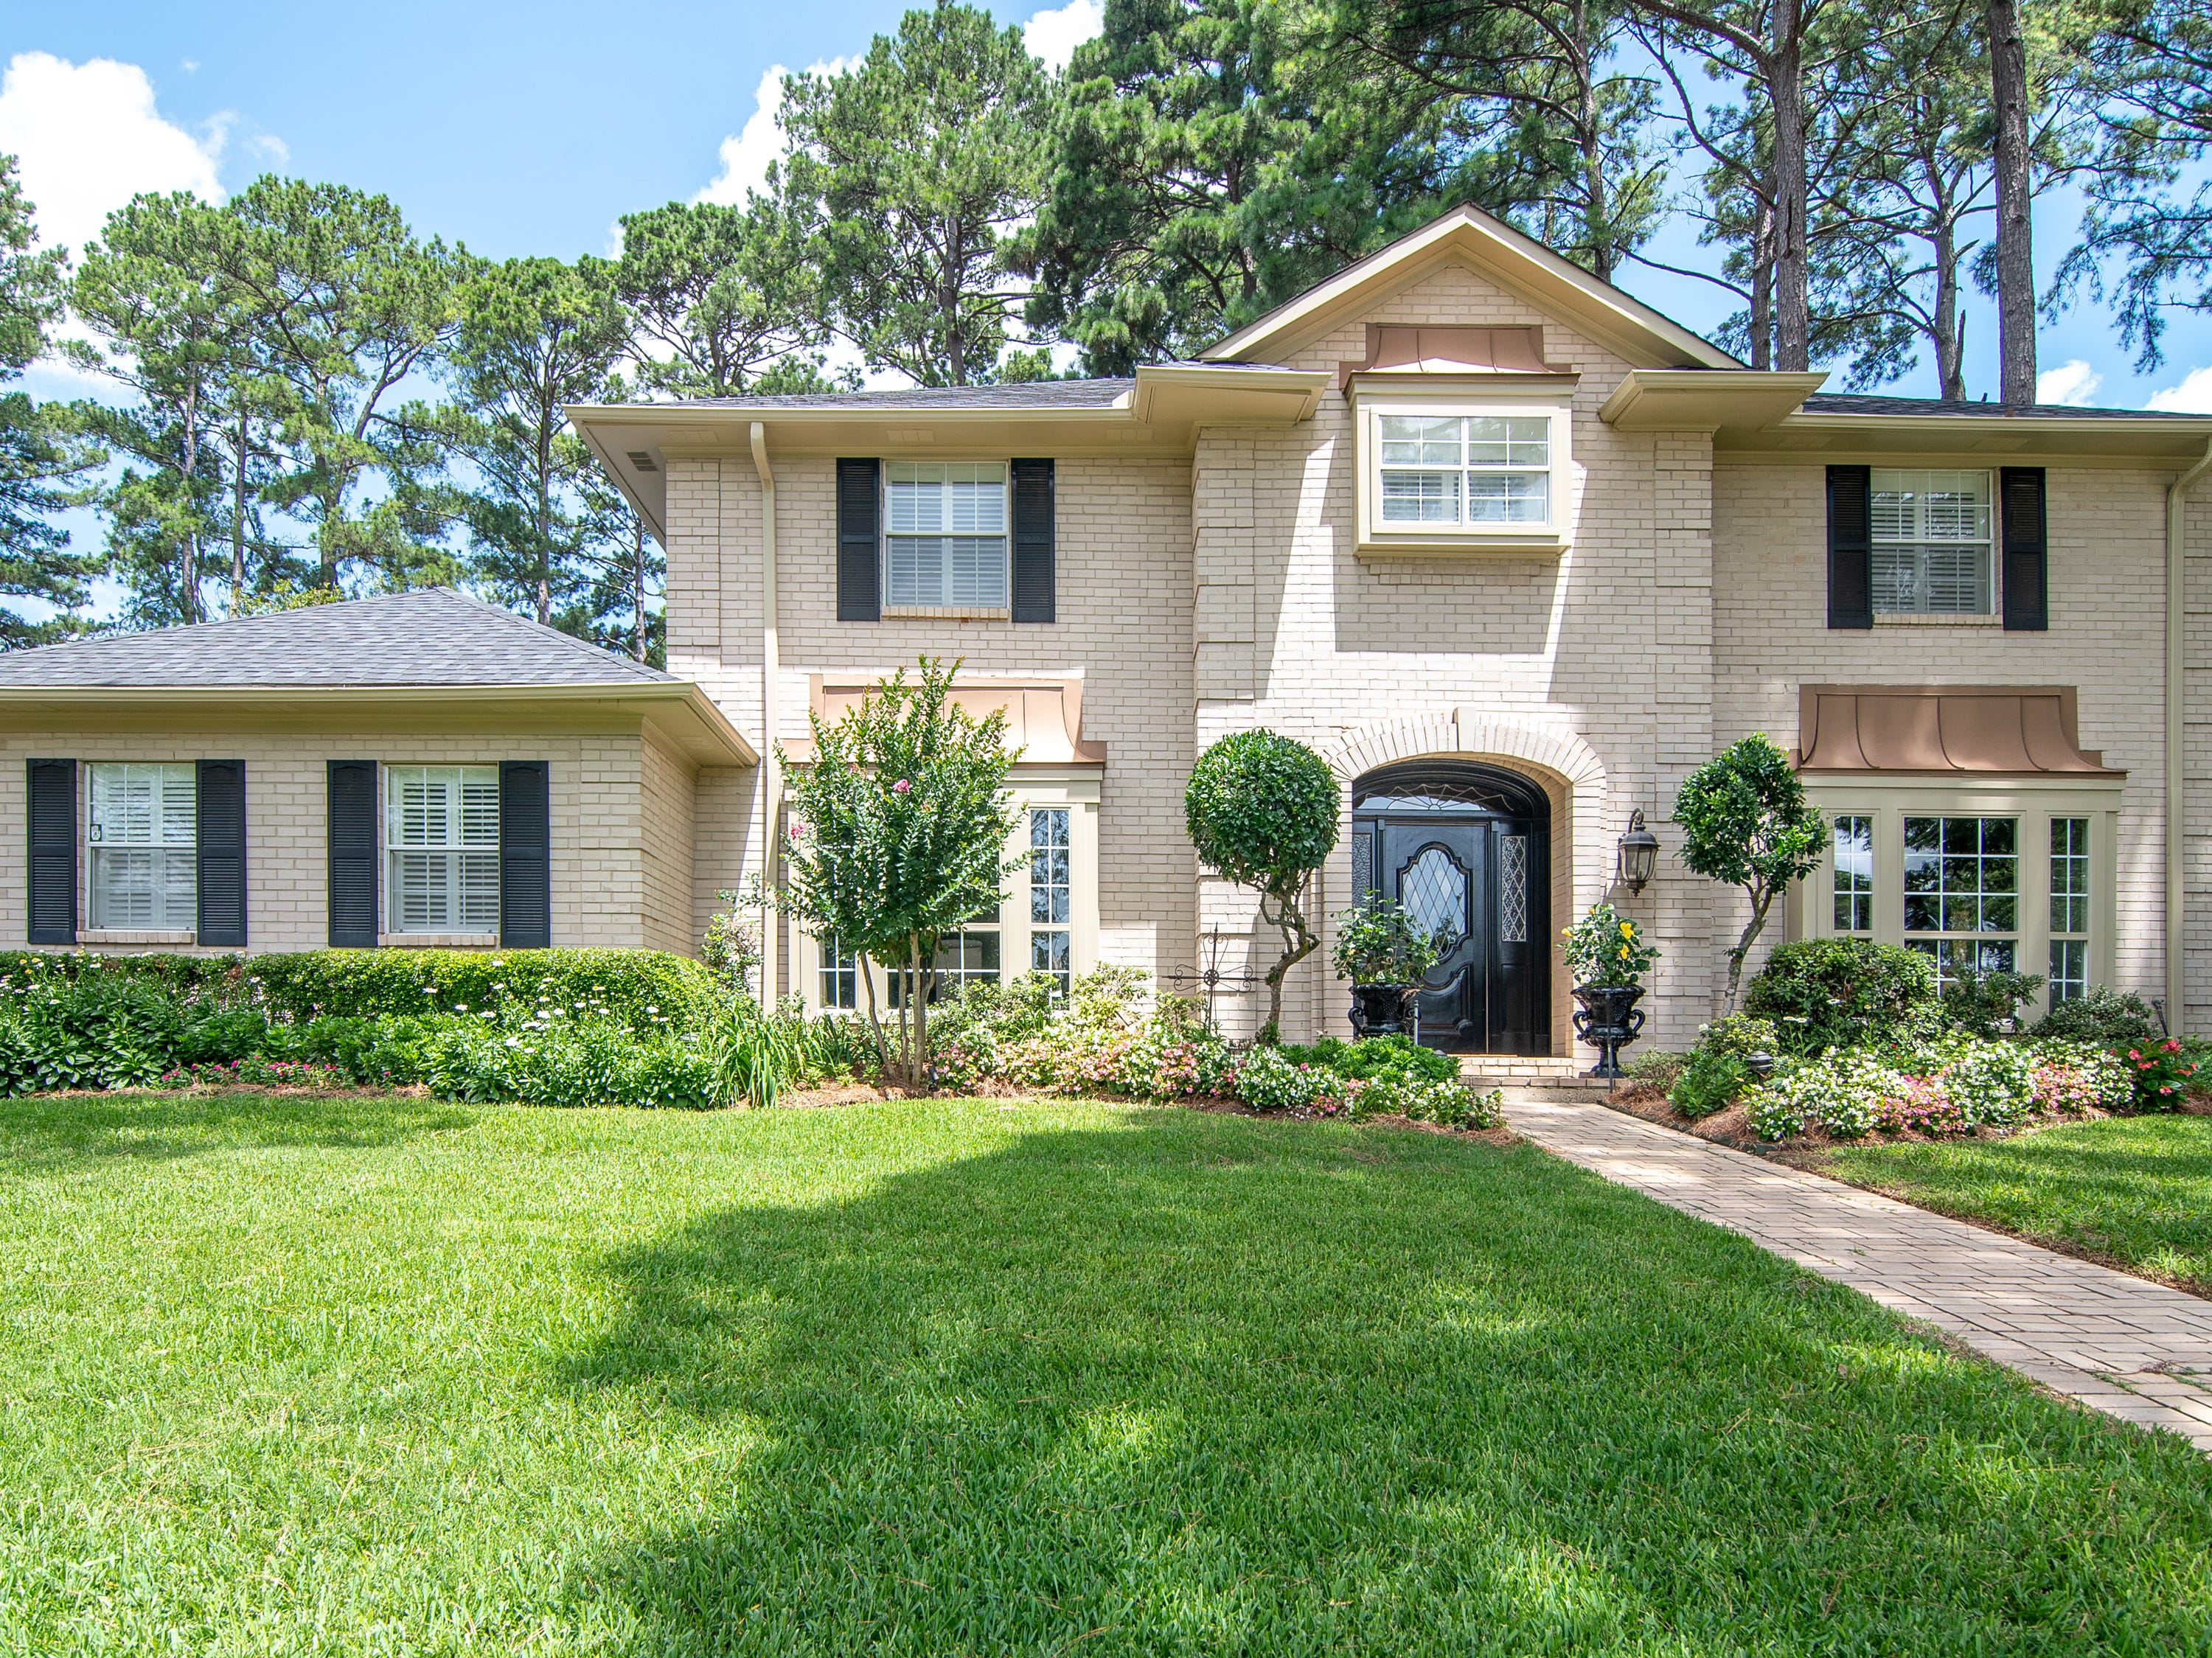 527 Loch Ridge Drive, Shreveport  Price: $475,000  Details: 4 bedrooms, 4 bathrooms, 3,807 square feet  Special features: Stately home in Spring Lake Estates, meticulously maintained landscaping,  cook's kitchen.   Contact: Chris Holloway, 518-7333